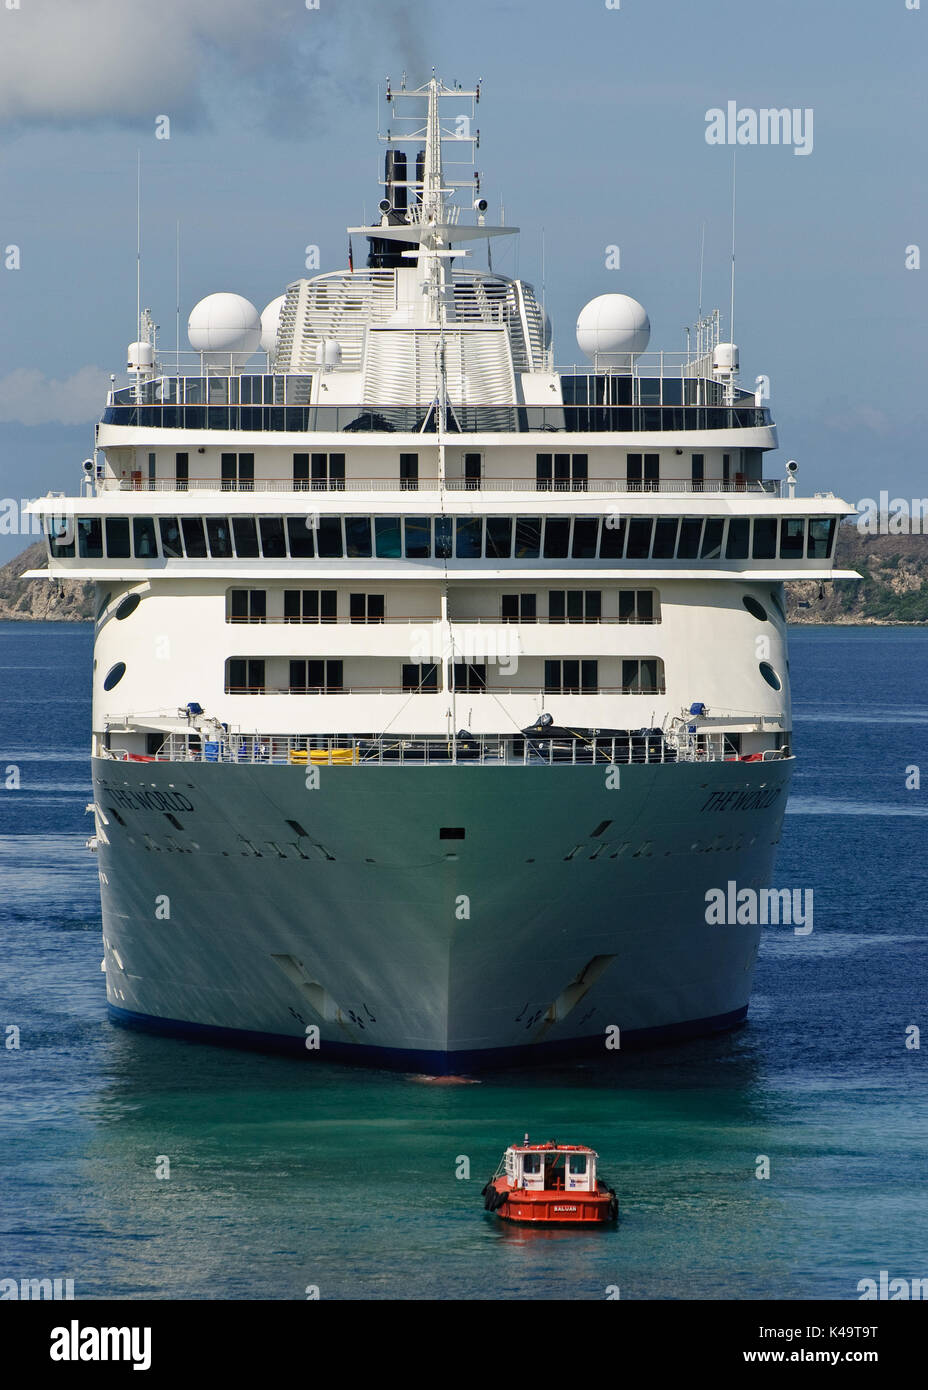 Cruise Liner 'The World' entering Port Moresby Harbour, Papua New Guinea - Stock Image